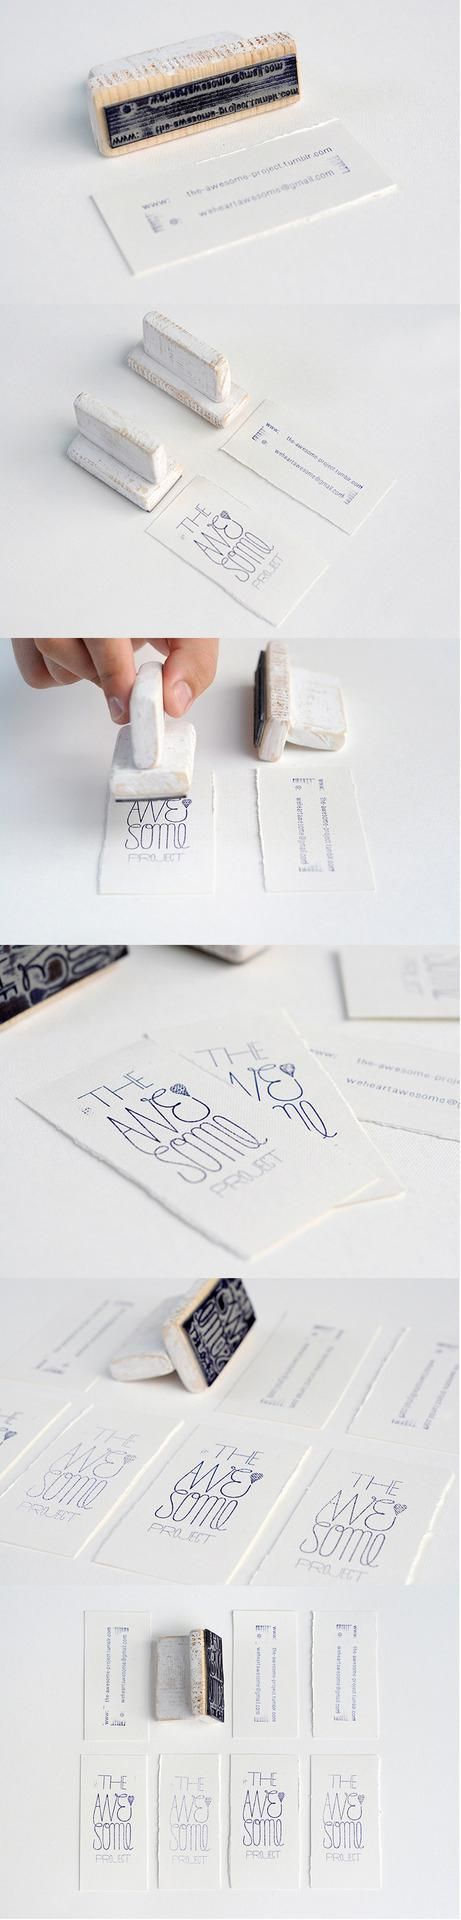 Creative business cards - handmade cards with hand-stamped ink leave an original impression. Designed by The Awesome Project.